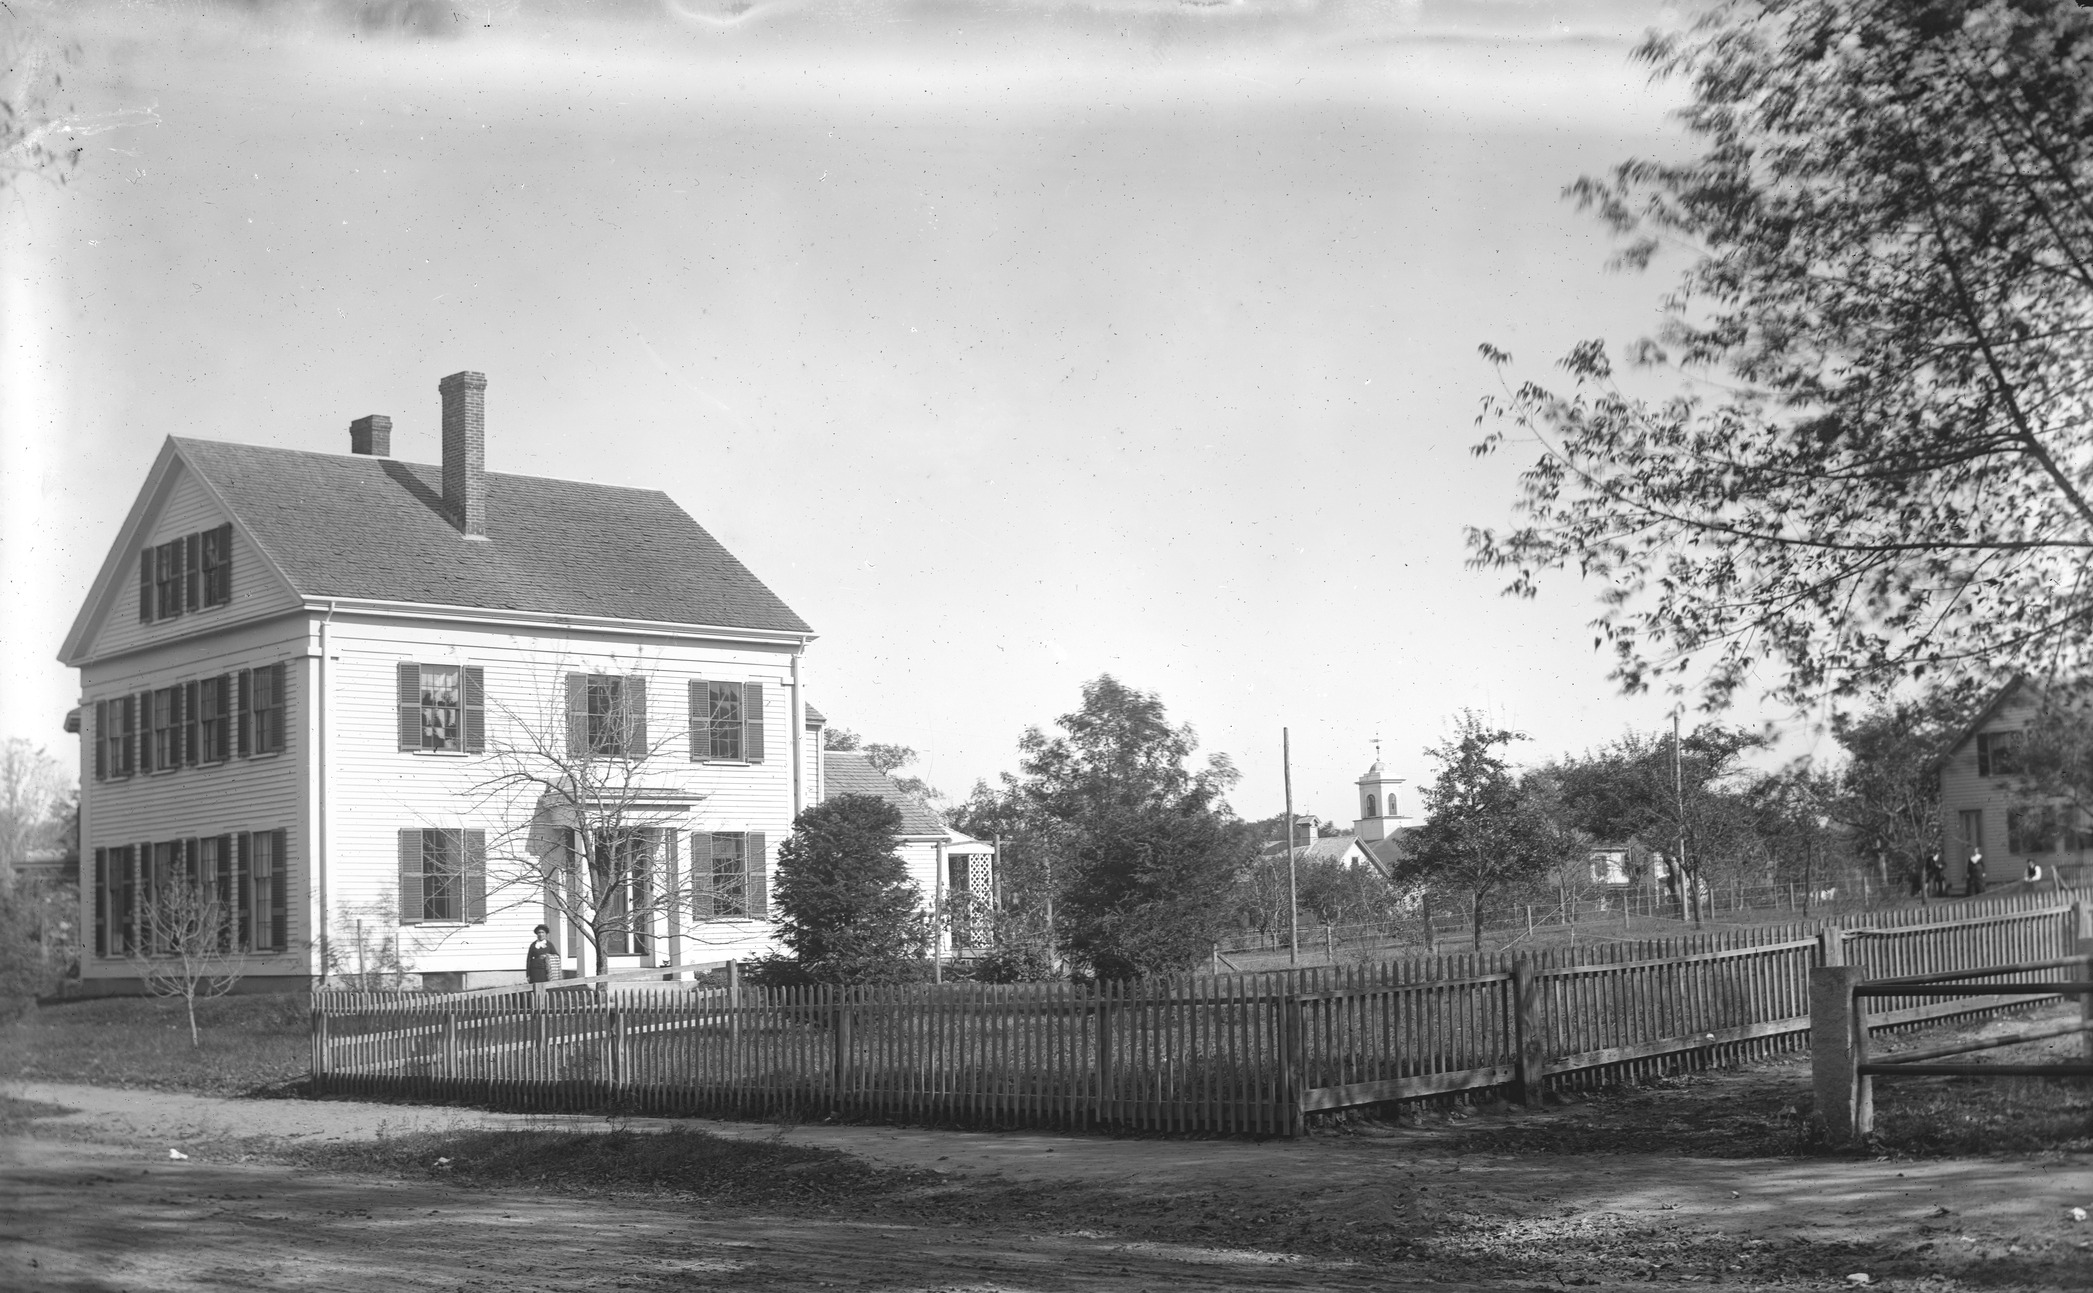 Photograph of the Ann Bigelow House in Concord, MA.